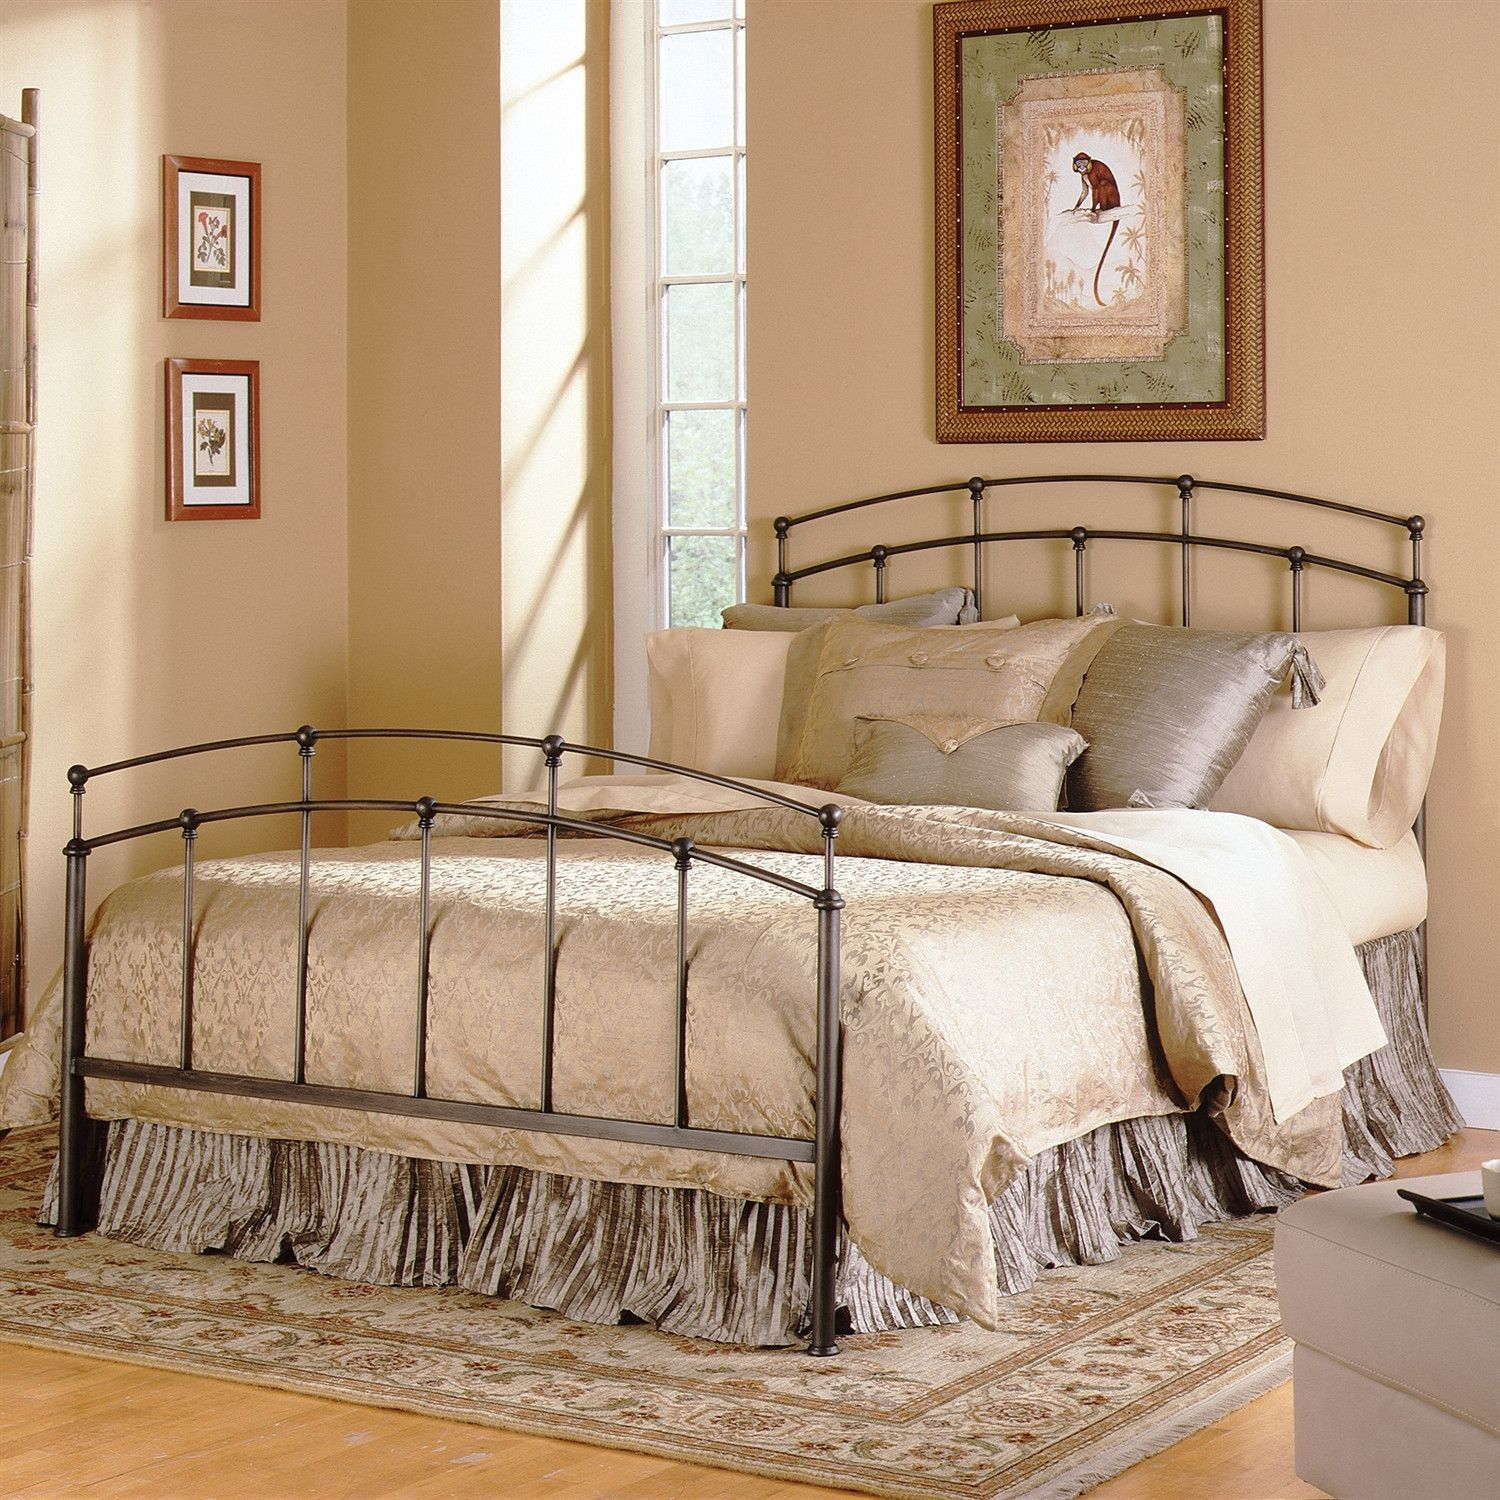 Best Queen Size Metal Bed With Headboard And Footboard In Black 640 x 480